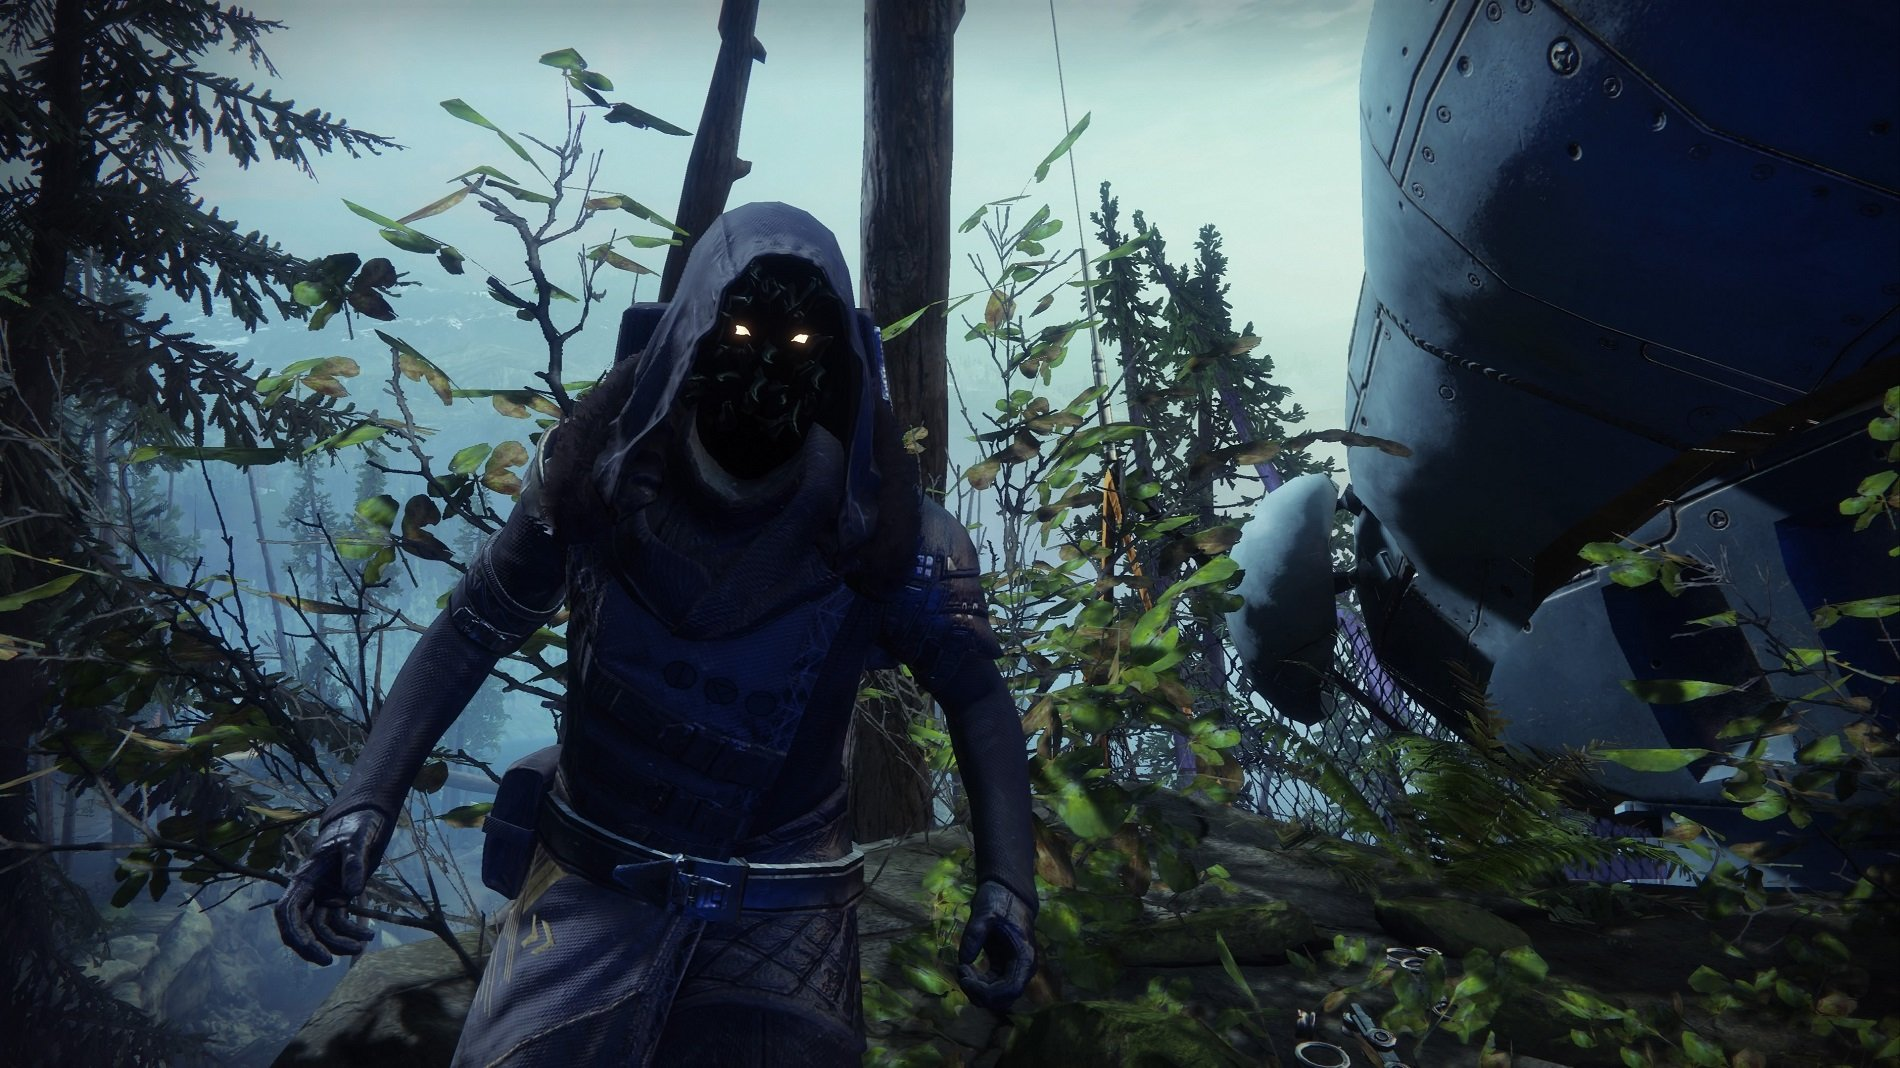 Where to find Xur in Destiny 2 - January 10, 2020